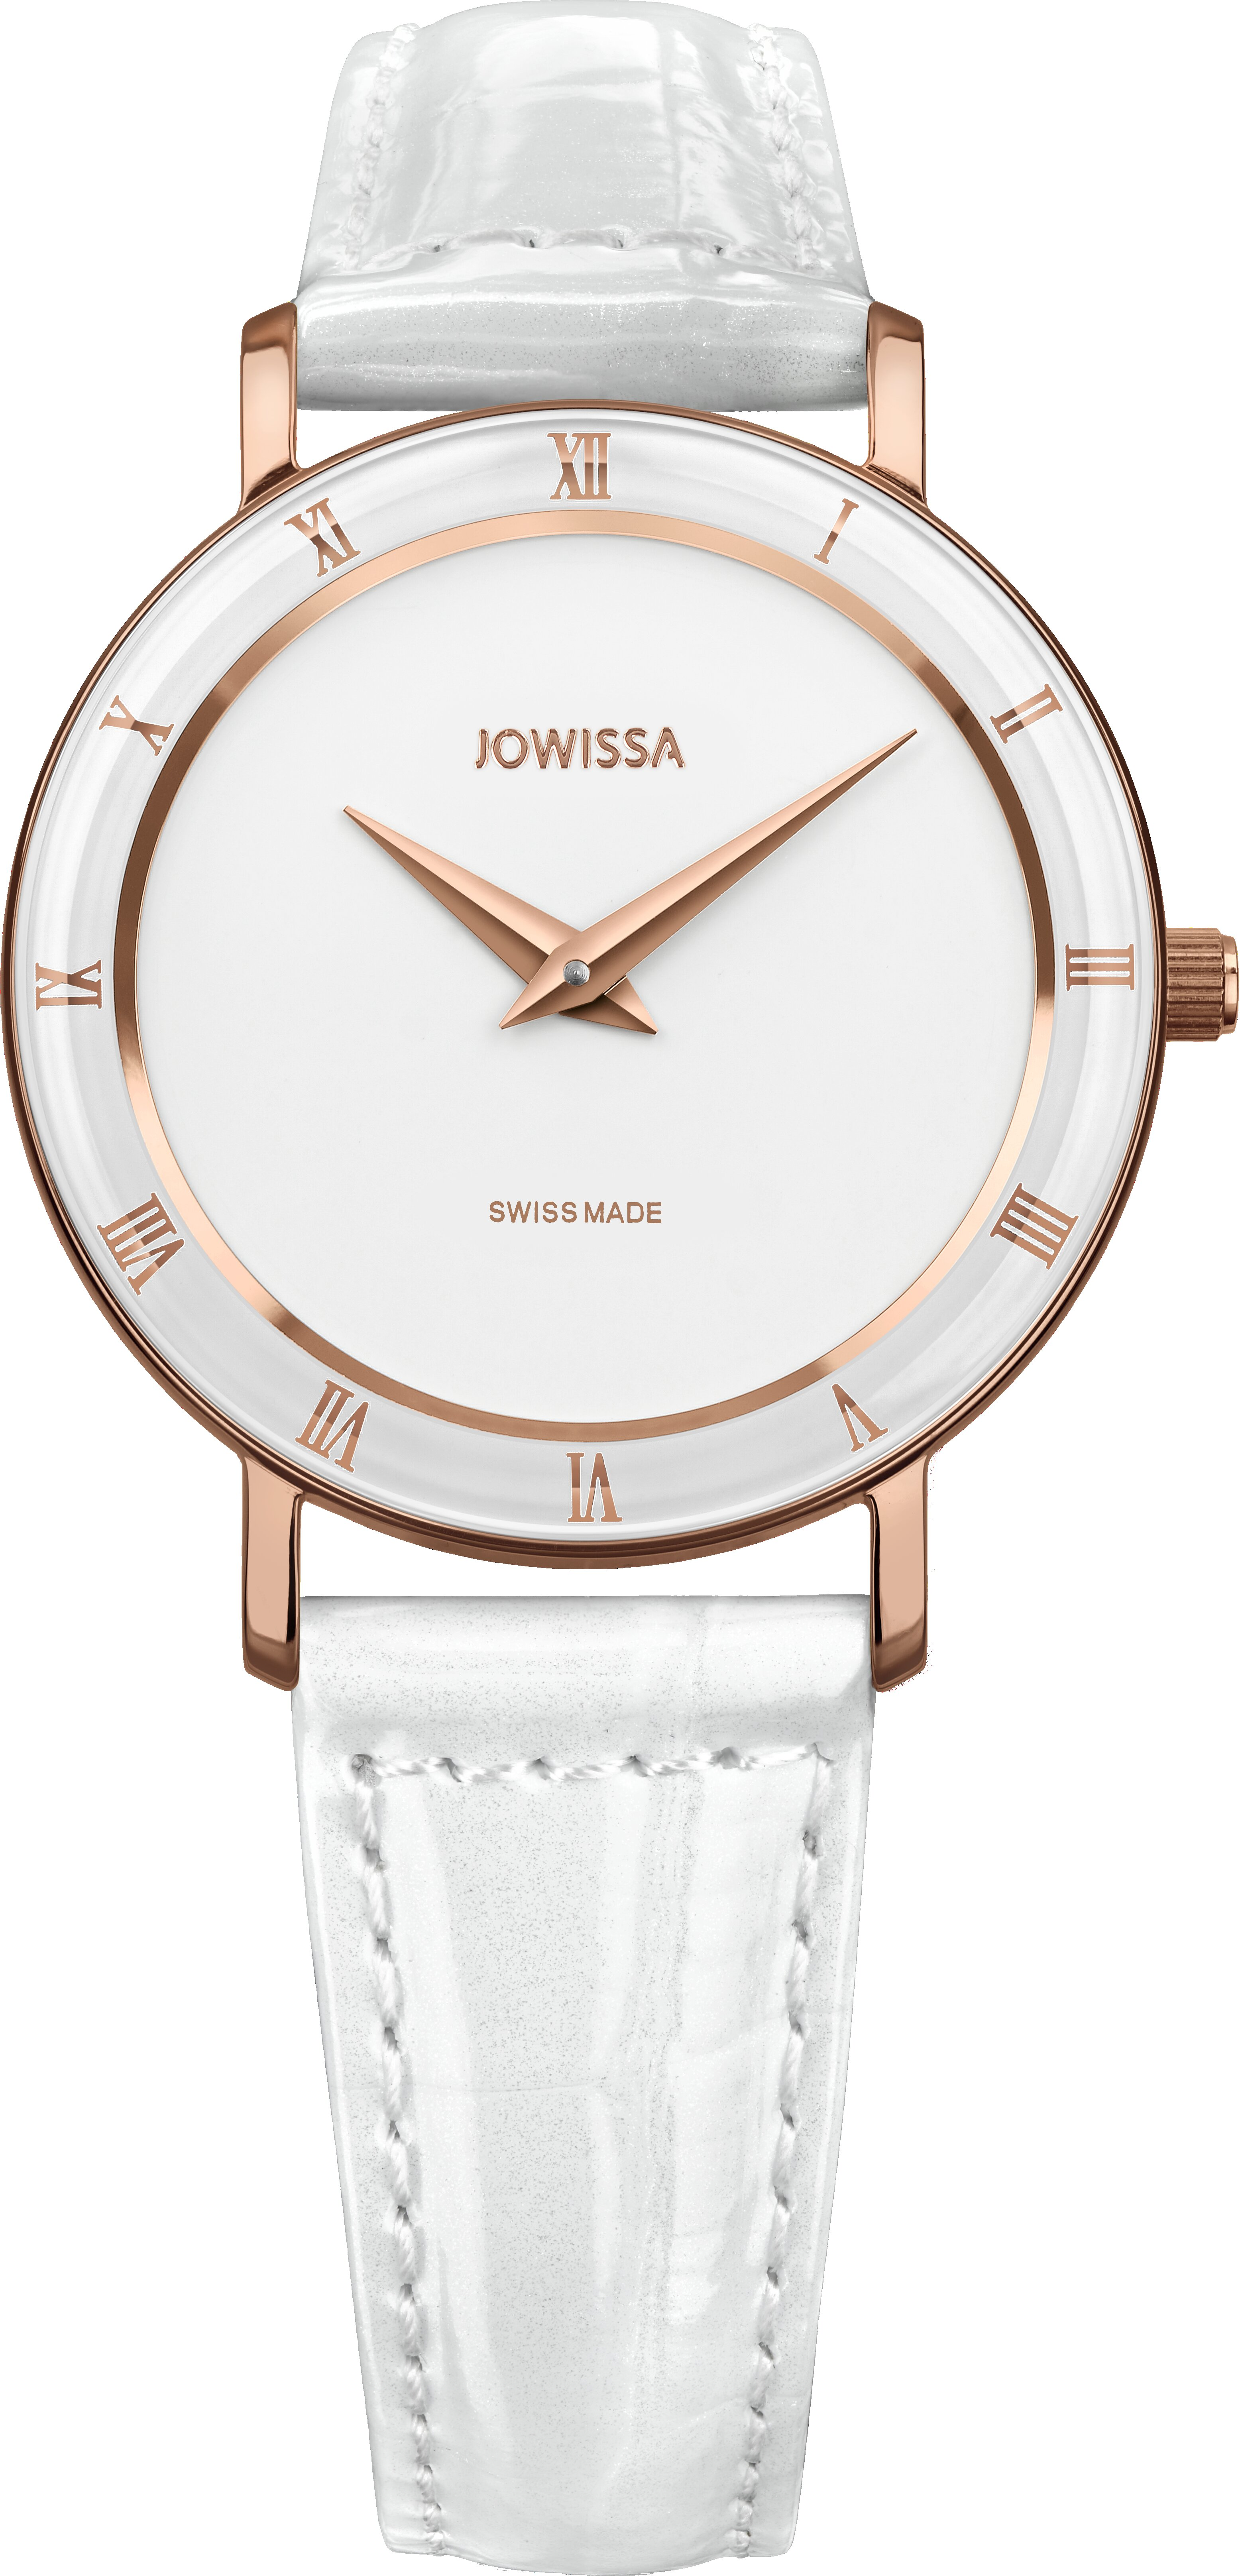 J2.310.M CringView Roma Jowissa Watch.jpg